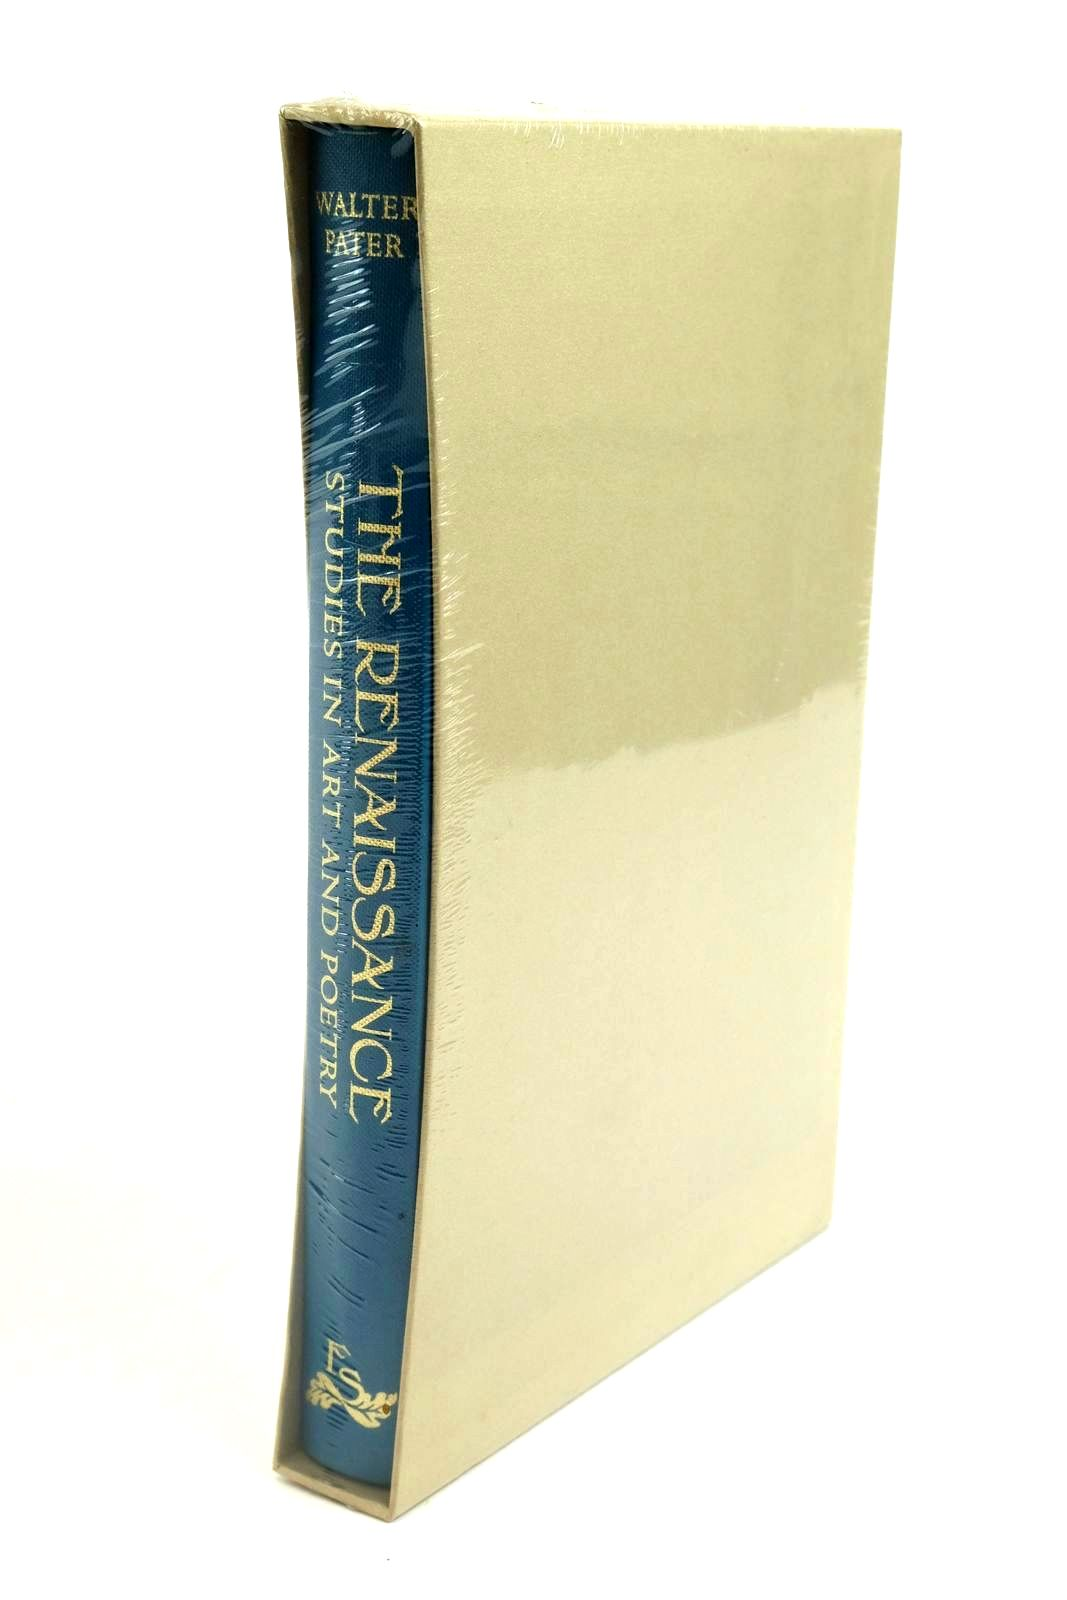 Photo of THE RENAISSANCE: STUDIES IN ART AND POETRY- Stock Number: 1321748